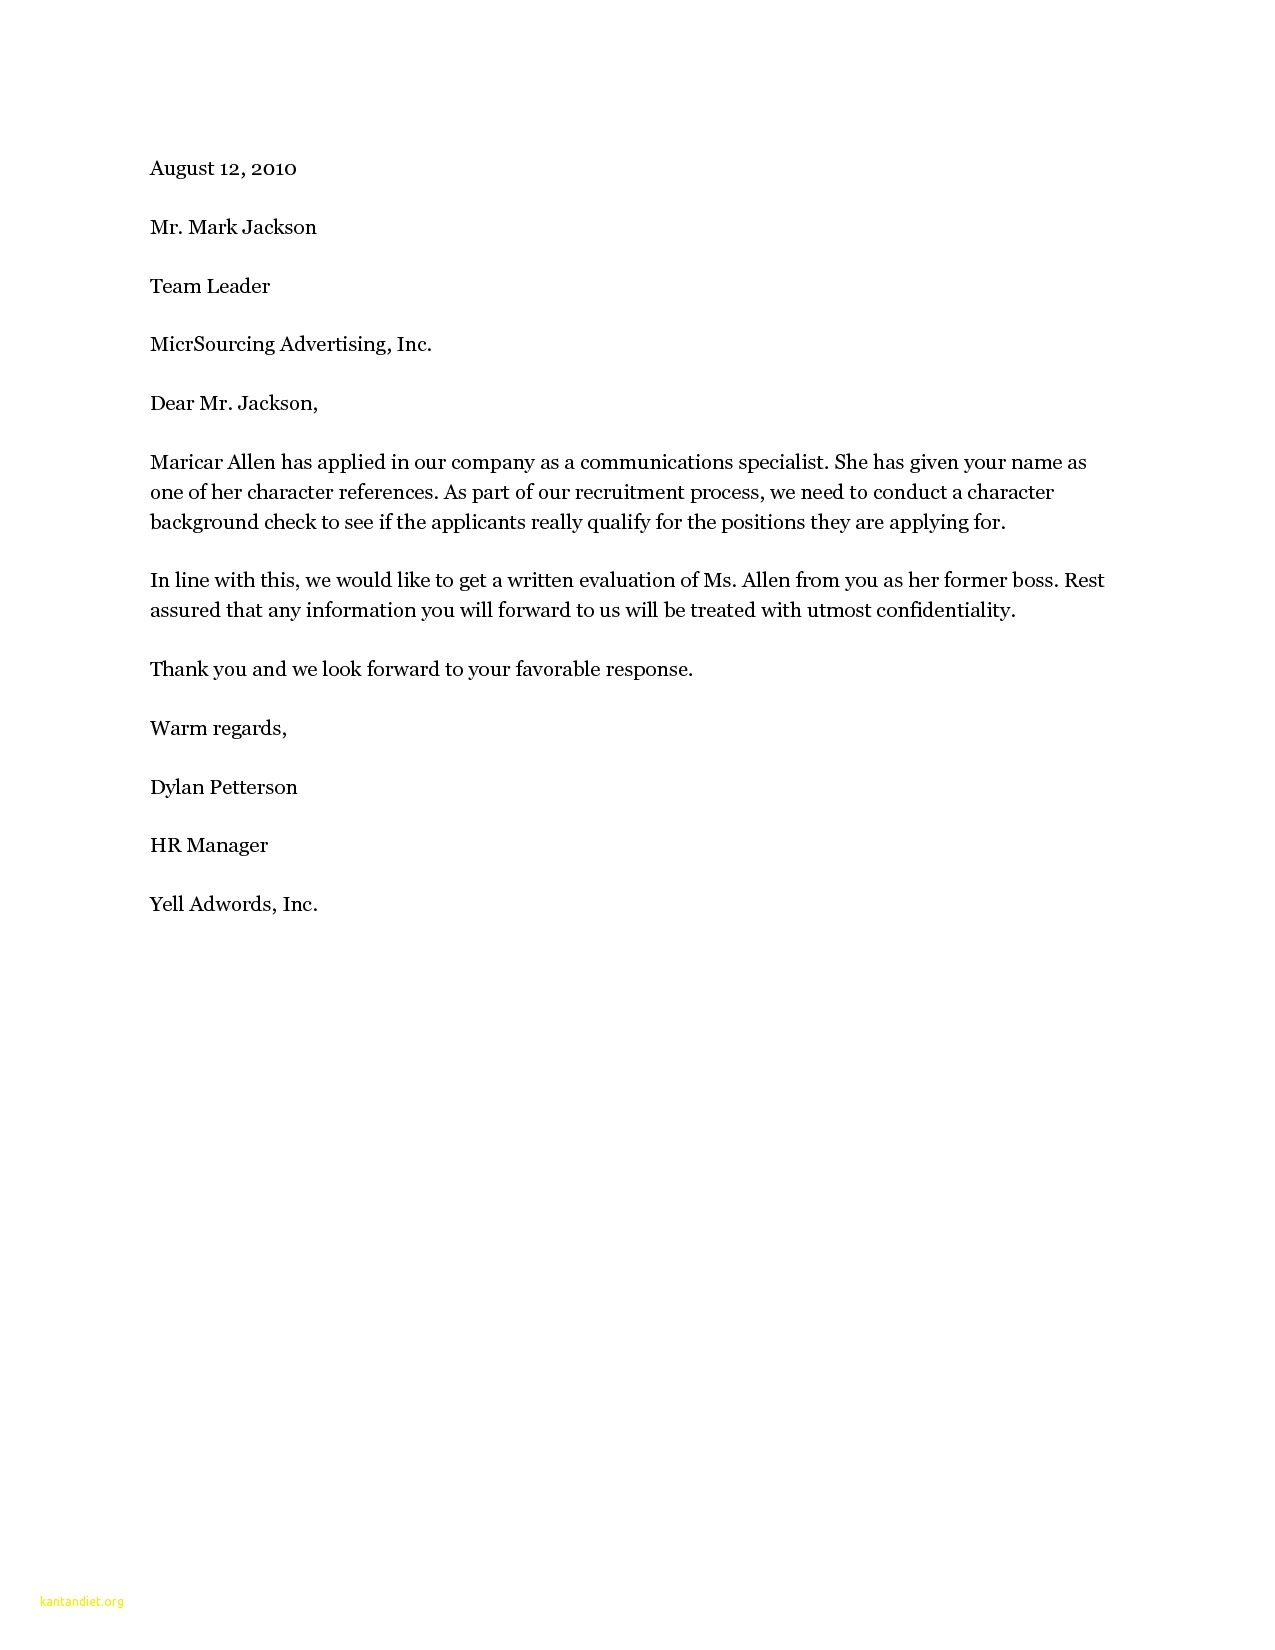 Letter Of Recommendation Letter Template - Dear Hiring Manager Cover Letter Sample 19 Cover Letter Template